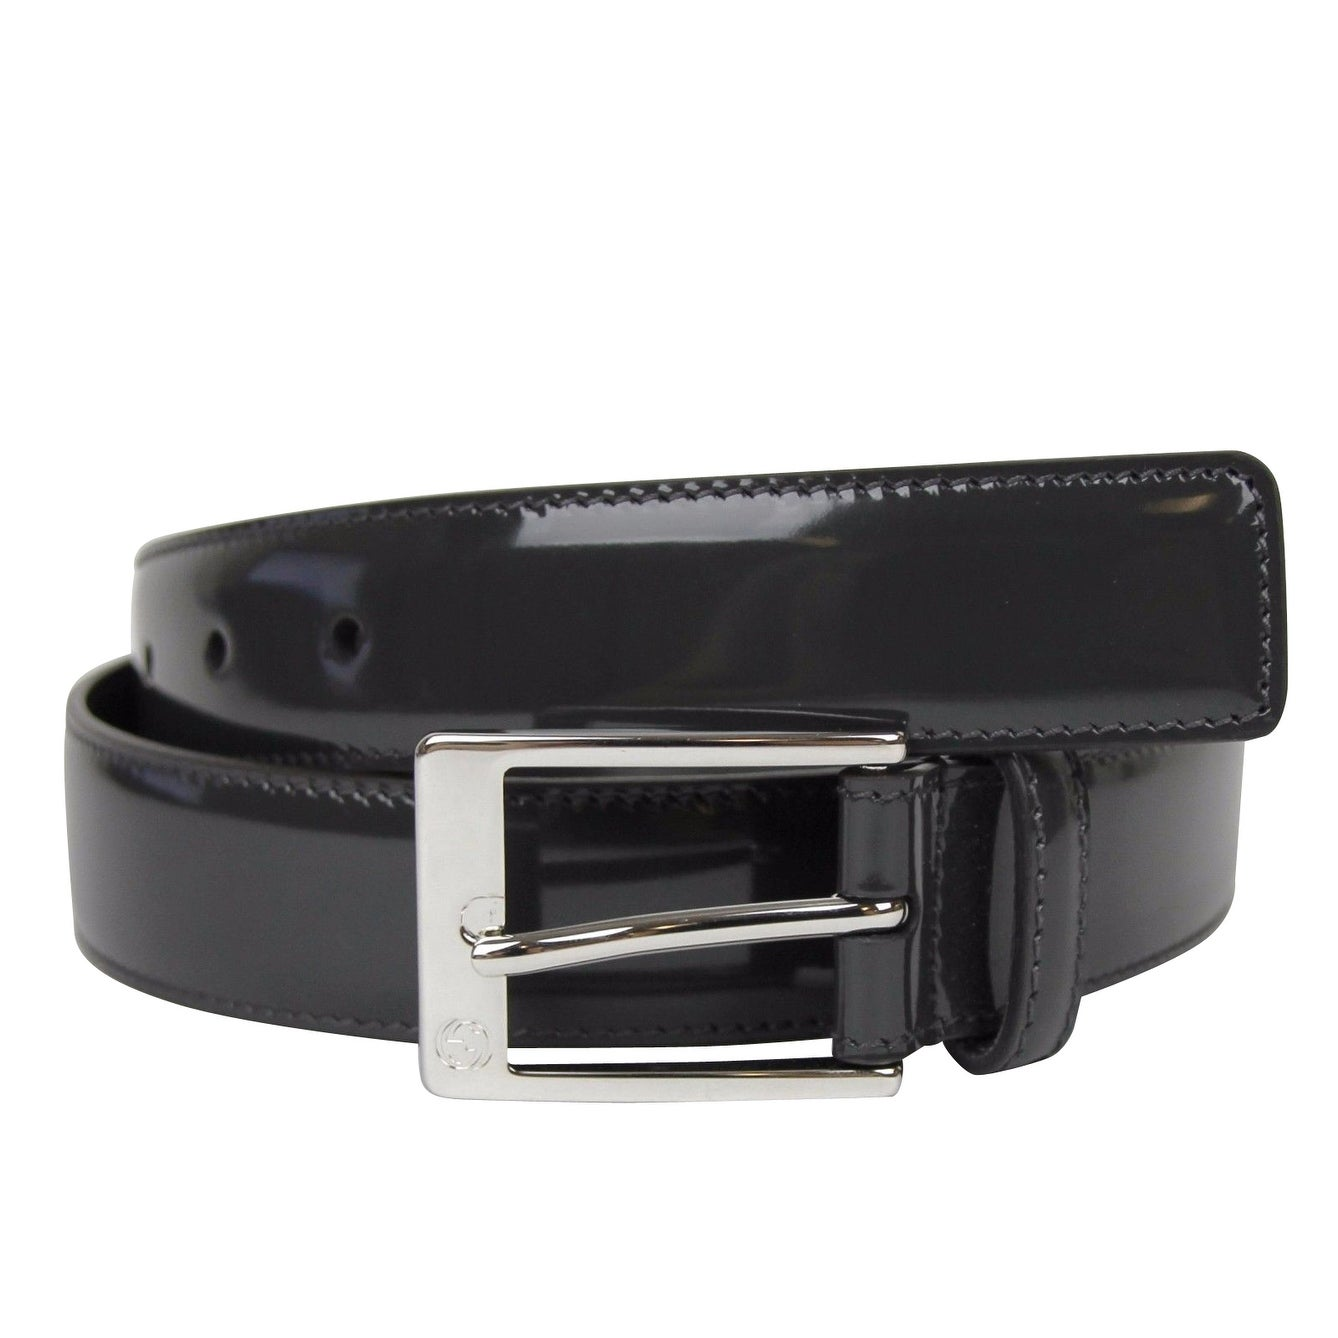 028a18e7d Gucci Men's Square Dark Gray Patent Leather Belt with GG Detail Buckle  345658 1107